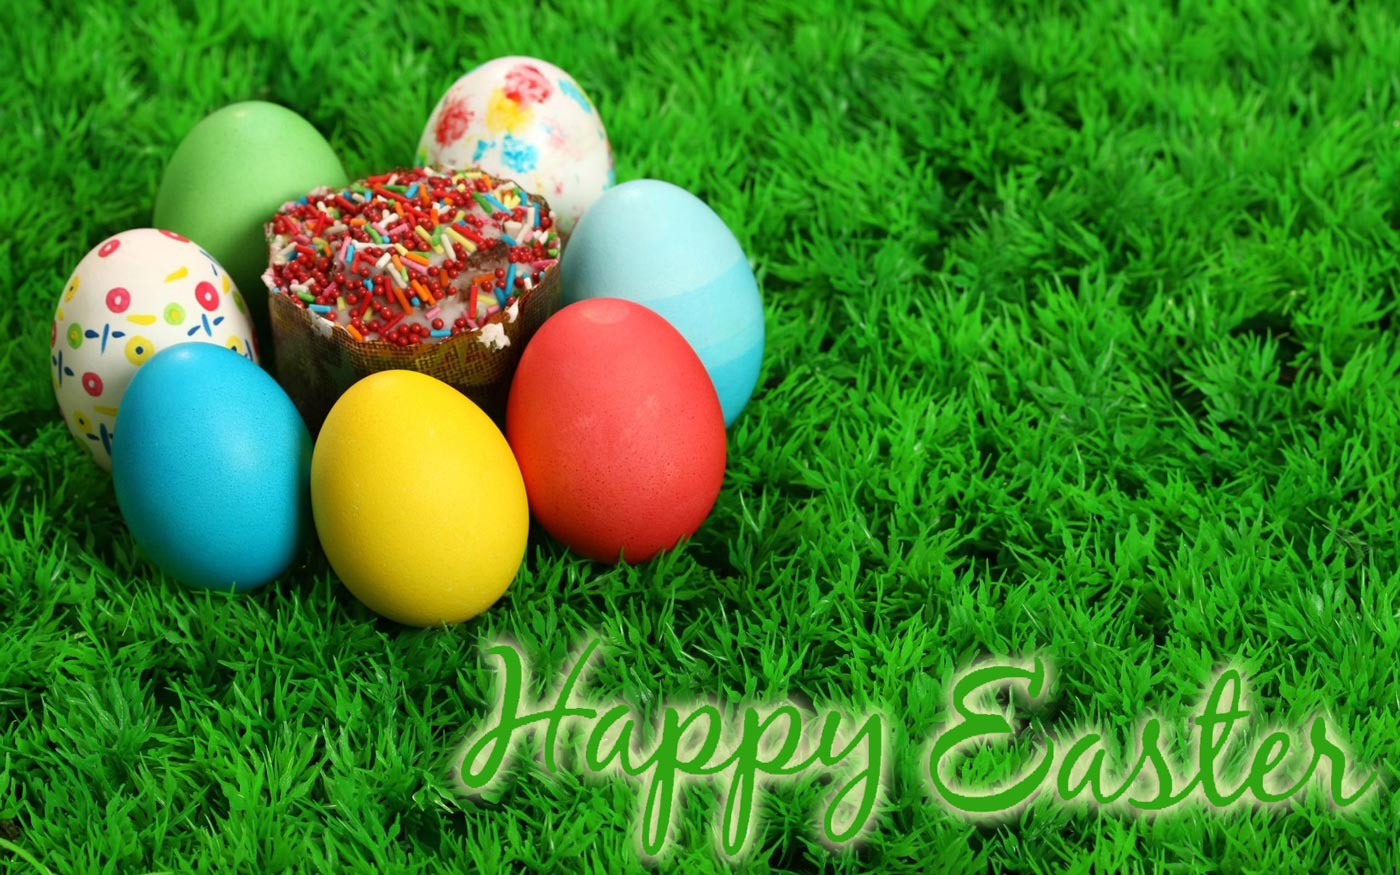 Happy Easter Day Exclusive HD Wallpapers 1195 1400x875